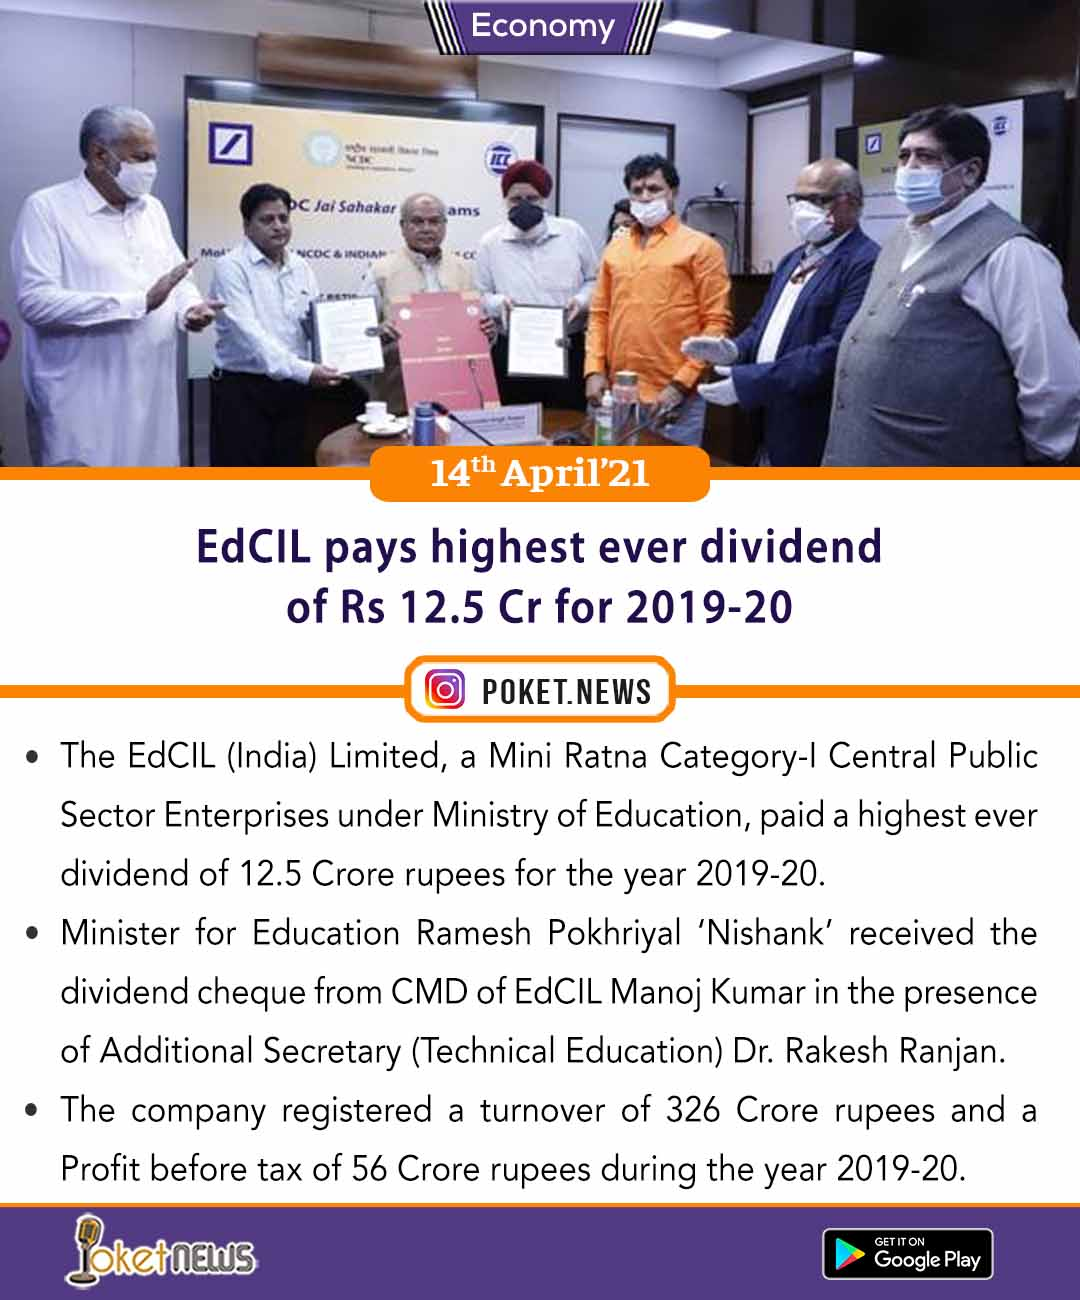 EdCIL pays highest ever dividend of Rs 12.5 Cr for 2019-20